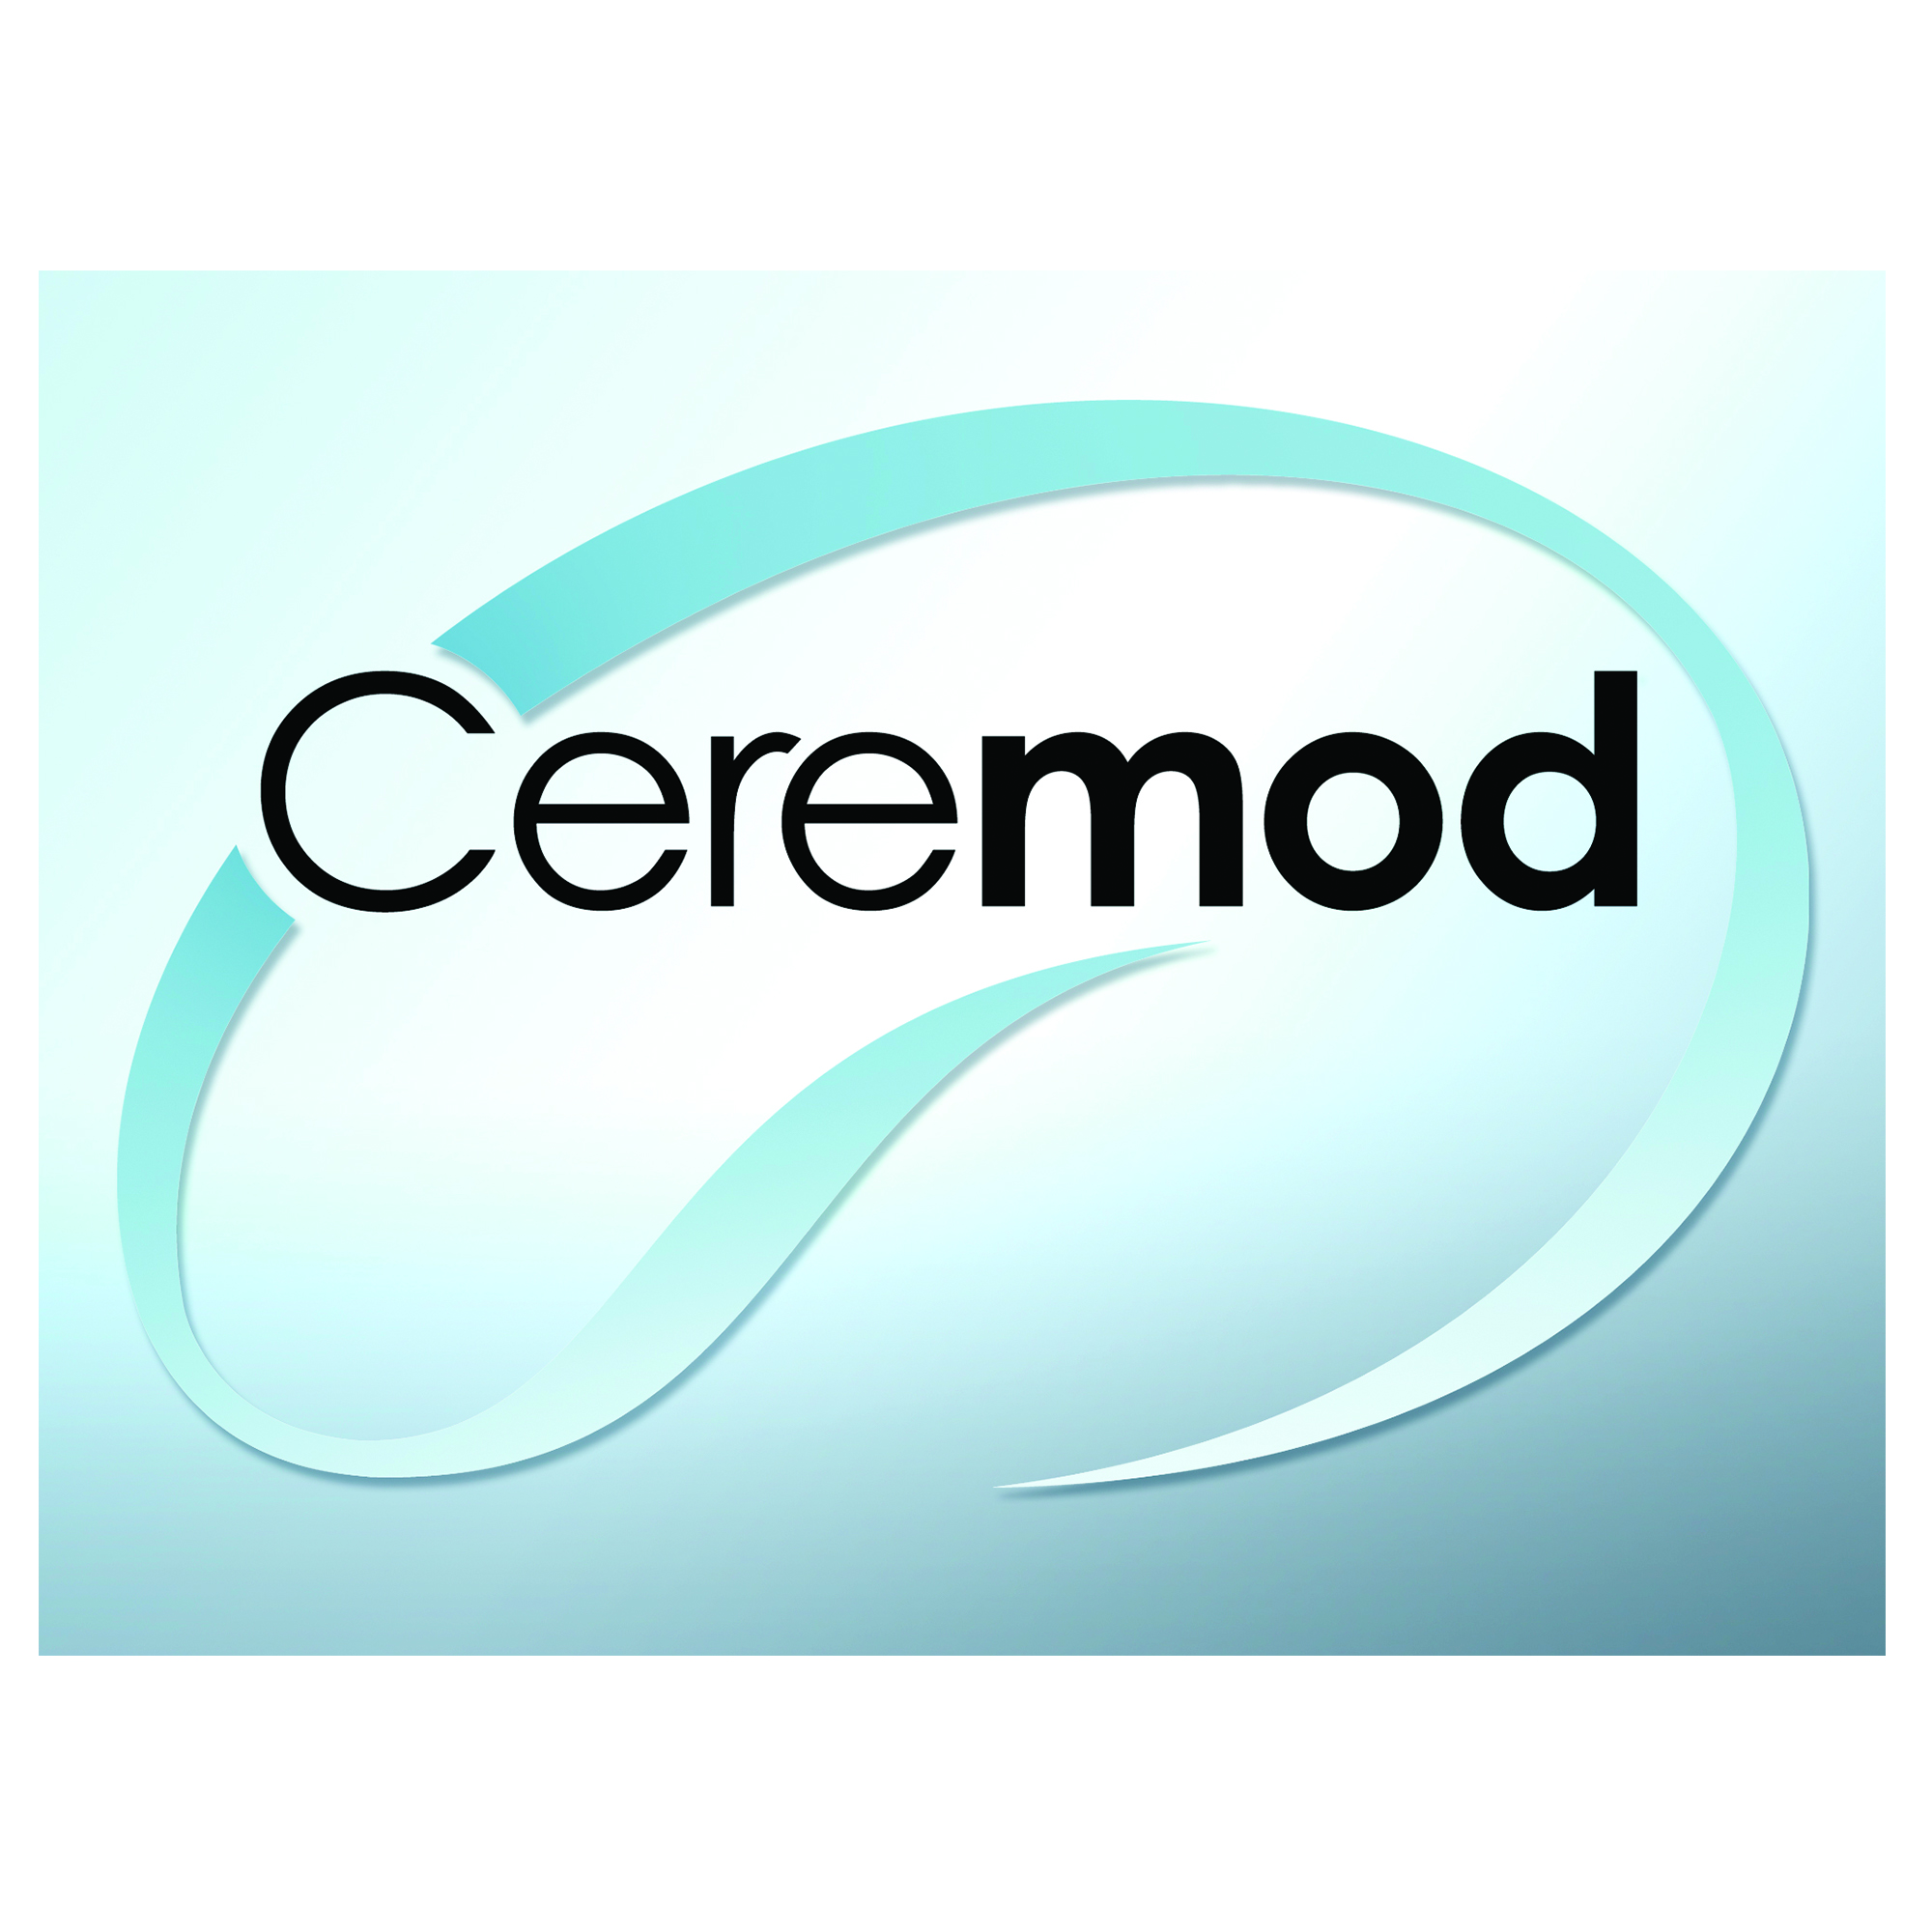 Ceremod logo